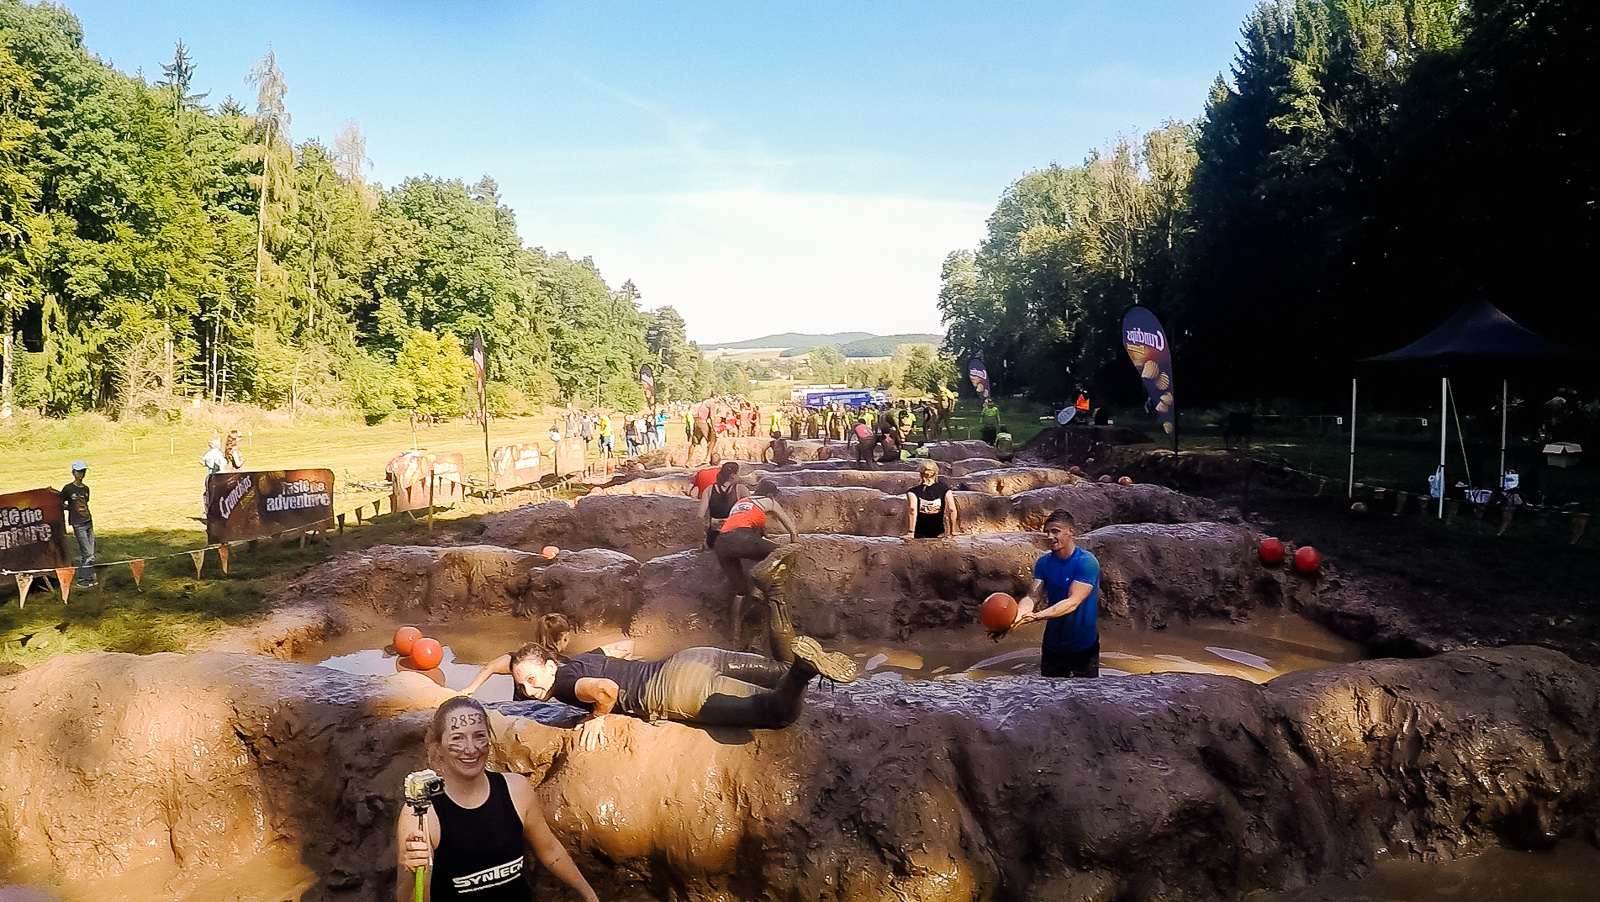 fitnessblog-fitnessblogger-fitness-blog-blogger-stuttgart-dreamteamfitness-tough-mudder-63